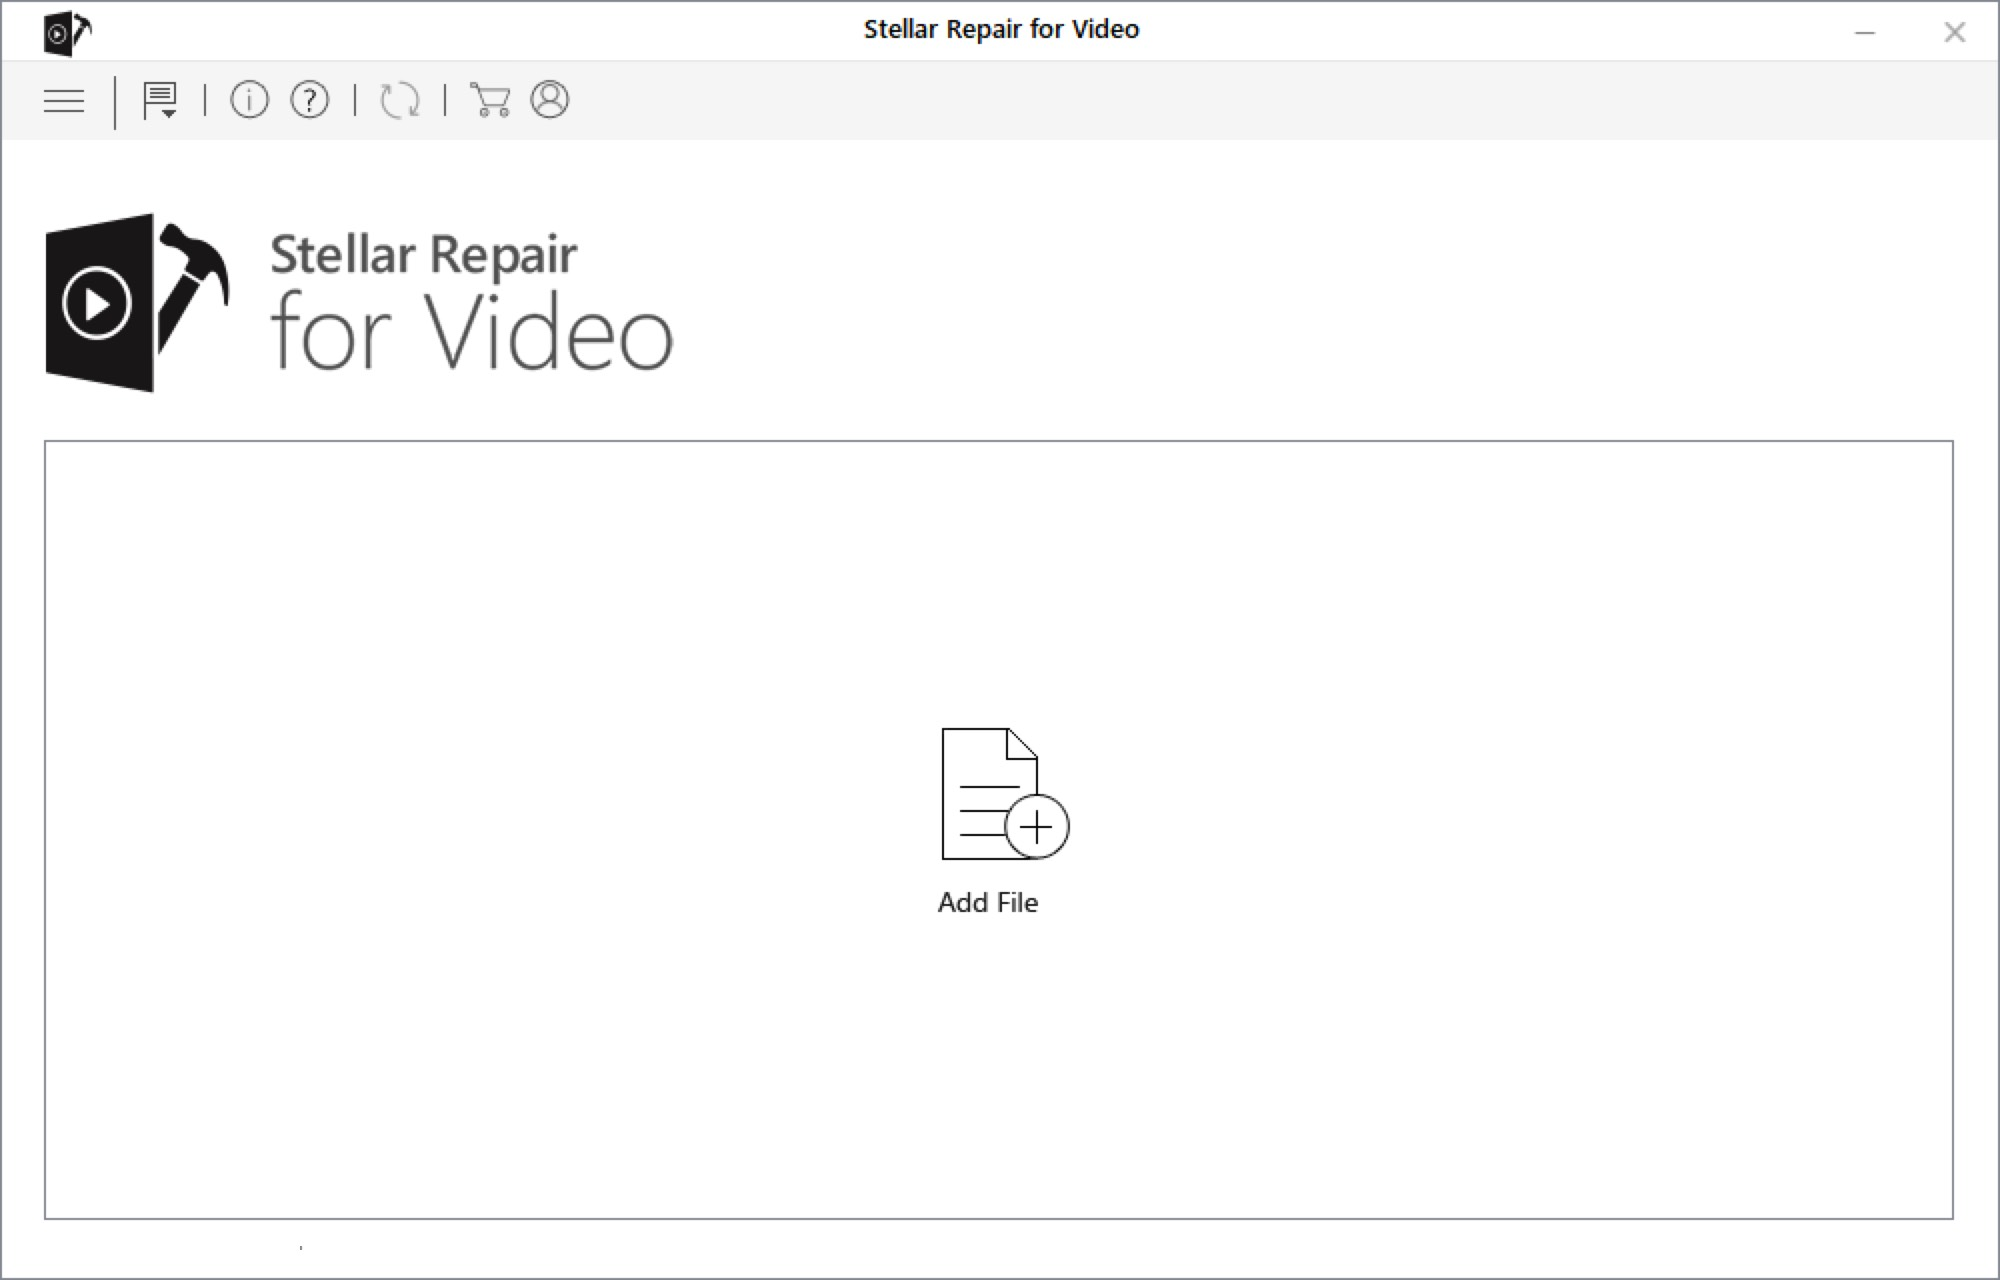 video repair tool-tenorshare video repair step 1